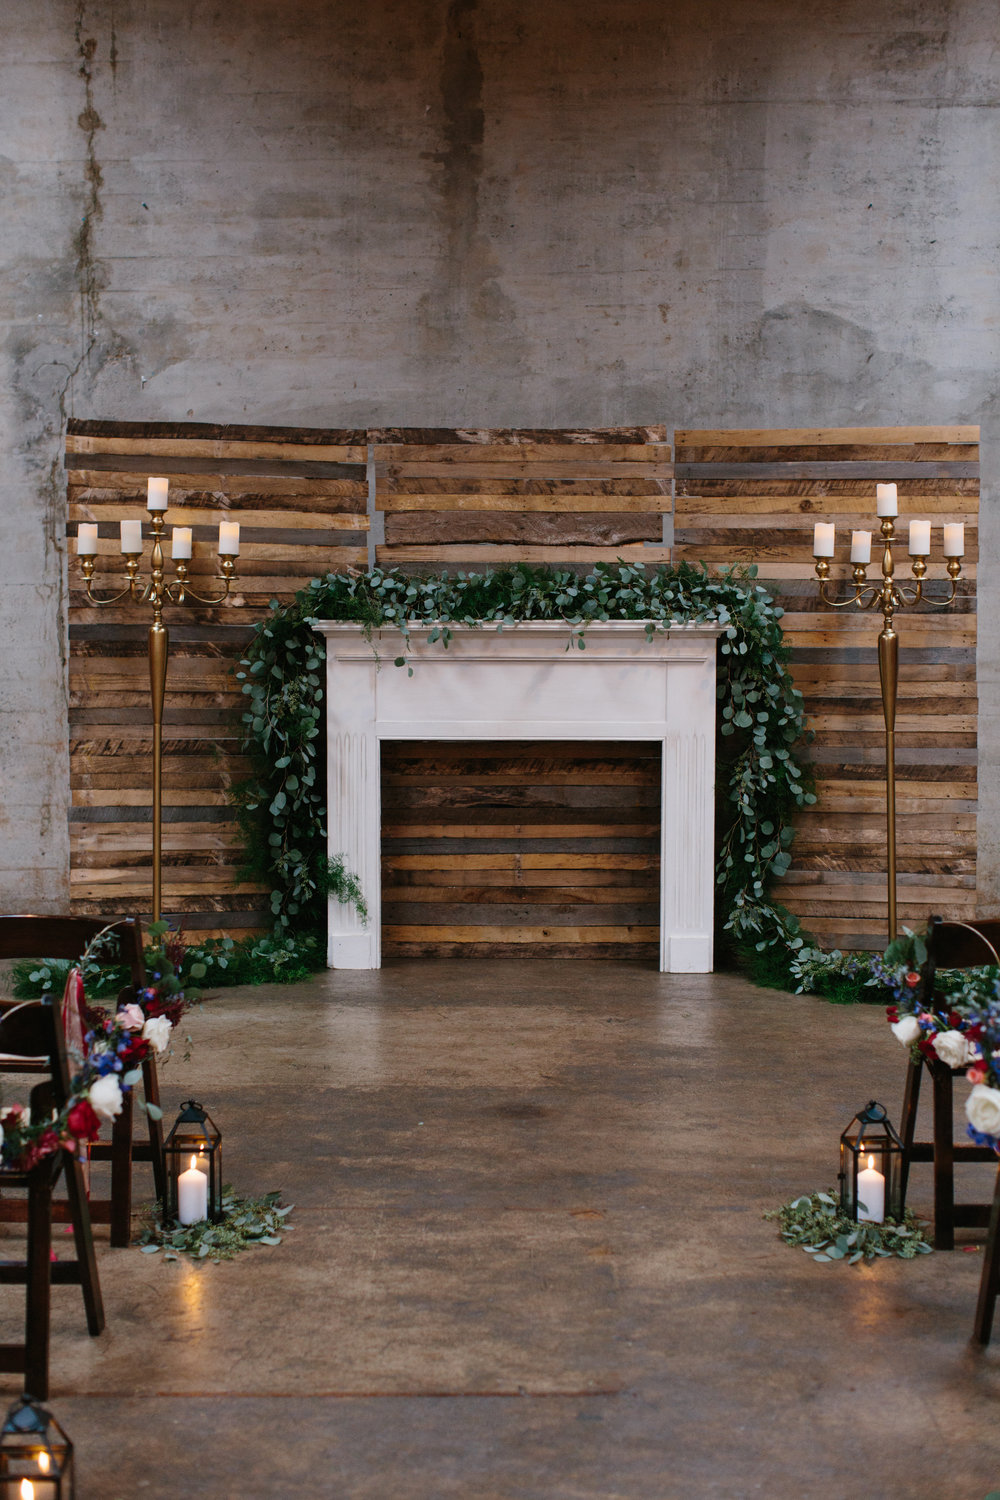 Jessica_Bryan_Wedding_Standard_Knoxville_Abigail_Malone_Photography-465.jpg